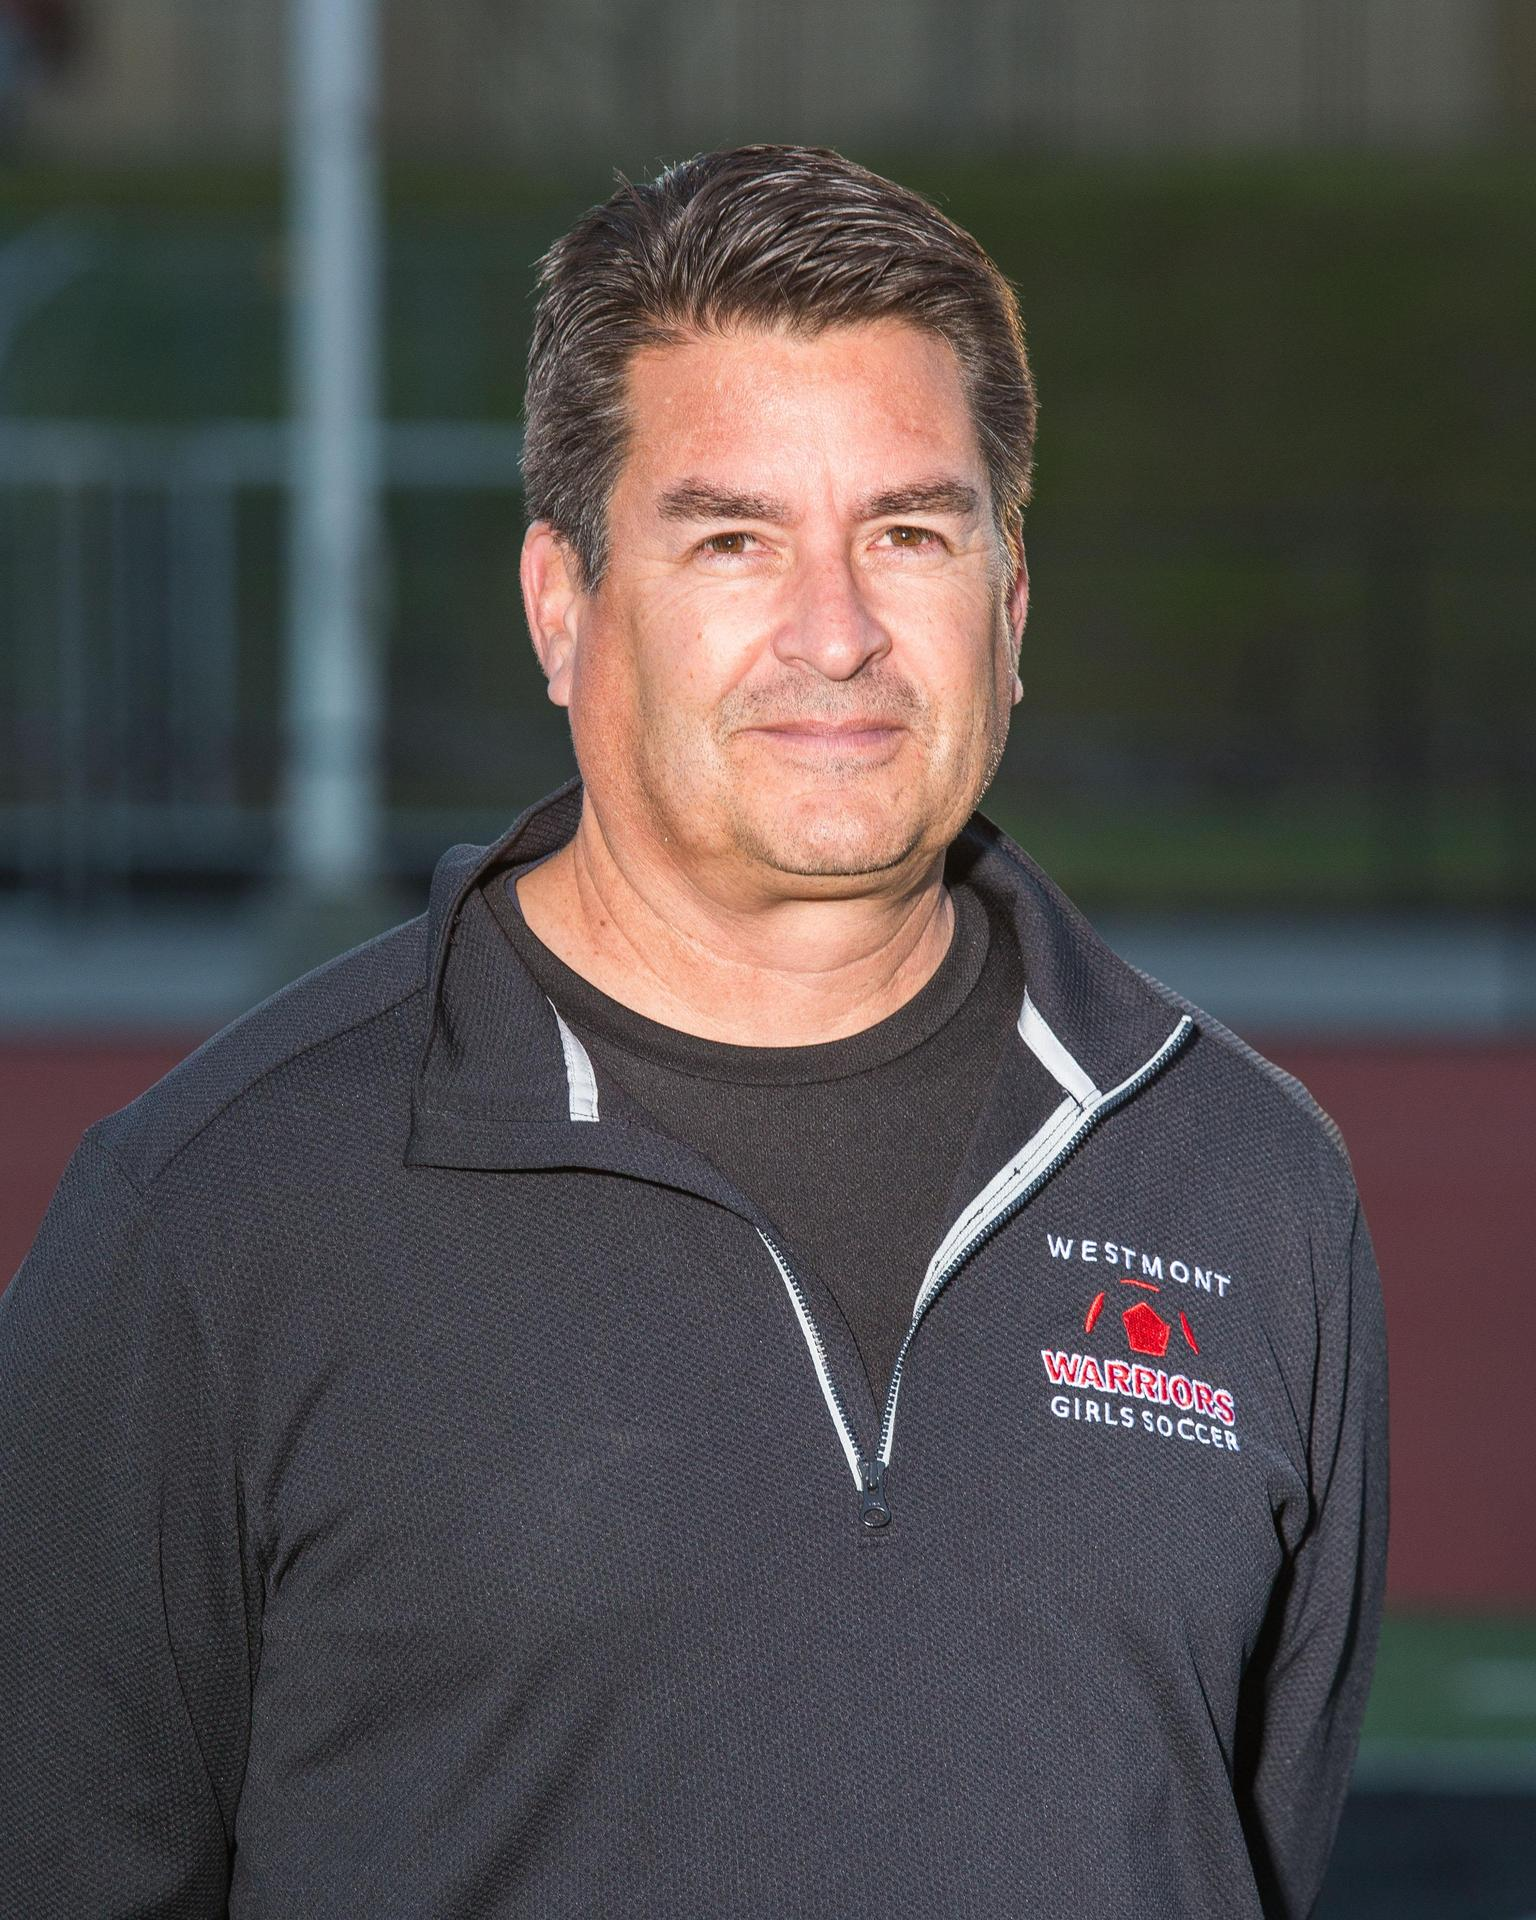 Photo of Coach Hughes